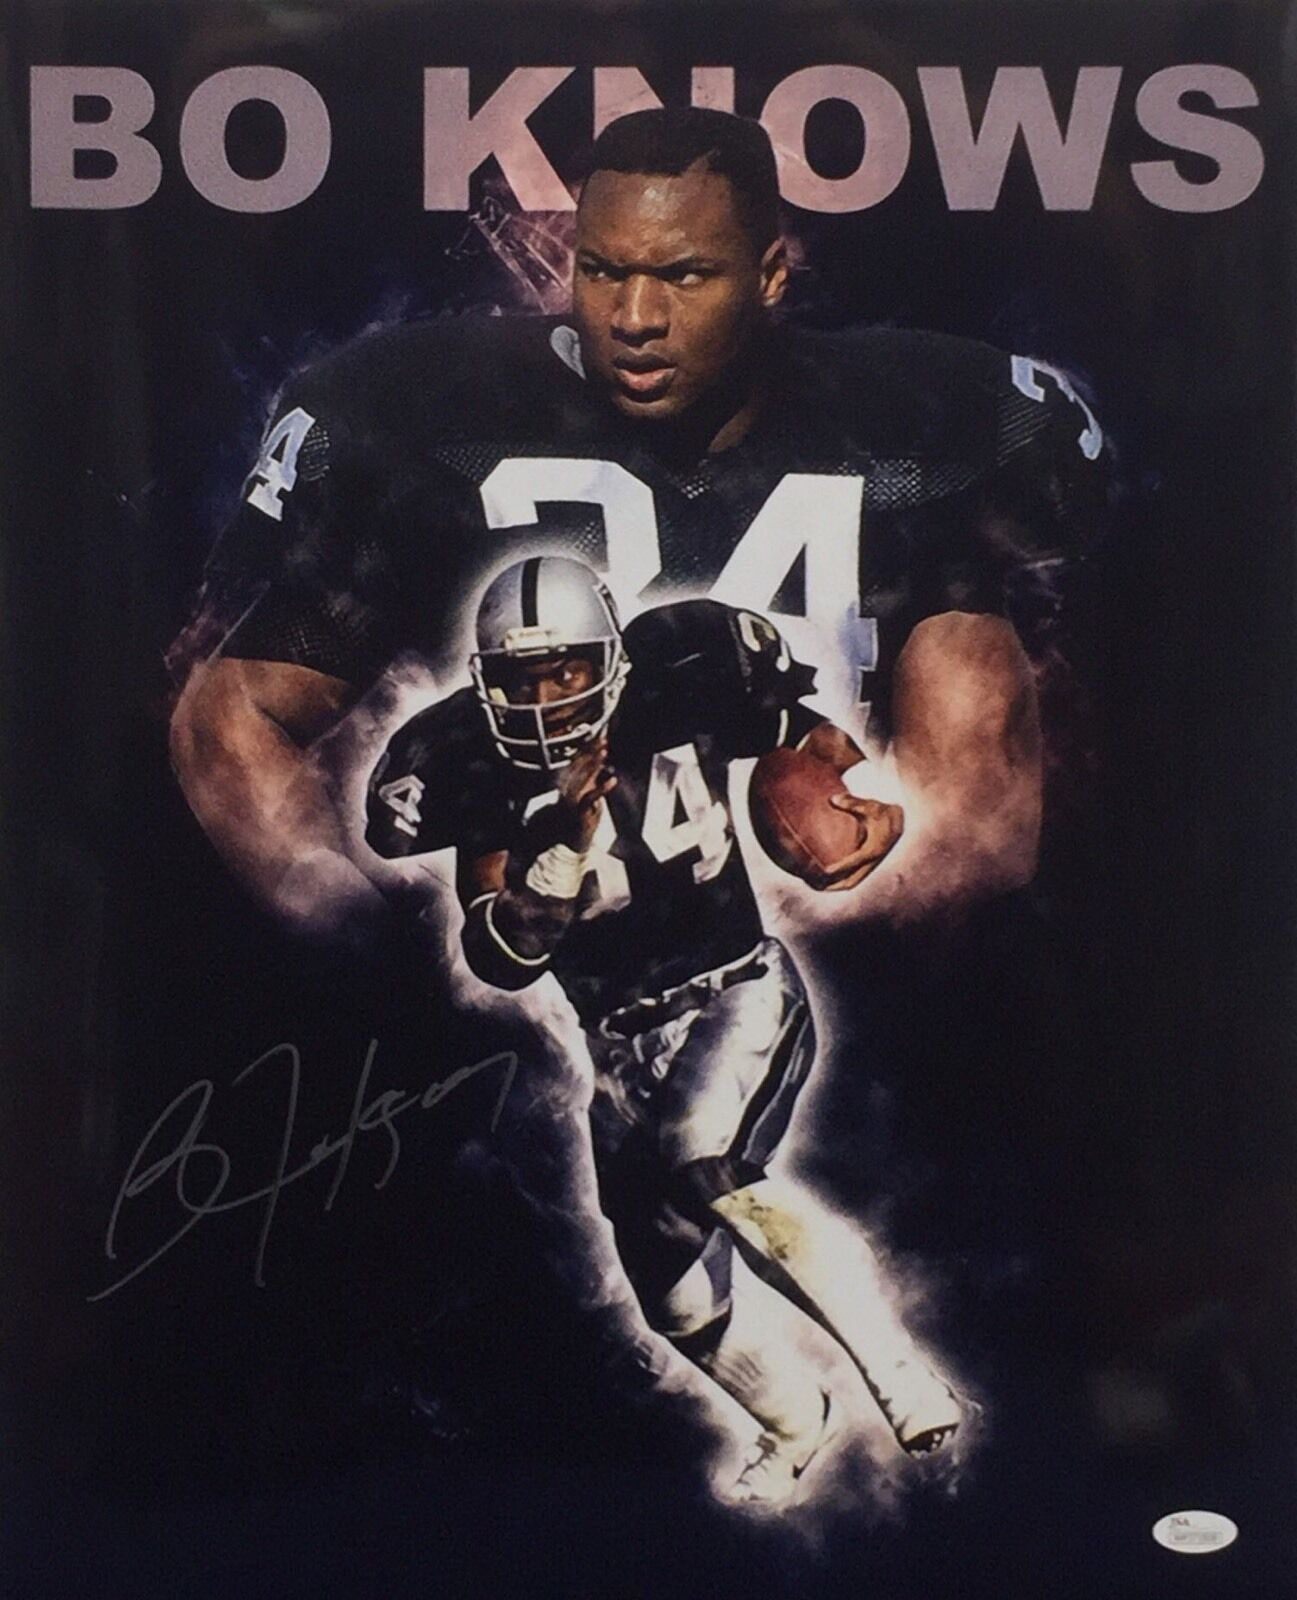 Bo Jackson Signed Custom Bo Knows Metallic 16x20 Photo Raiders Football JSA